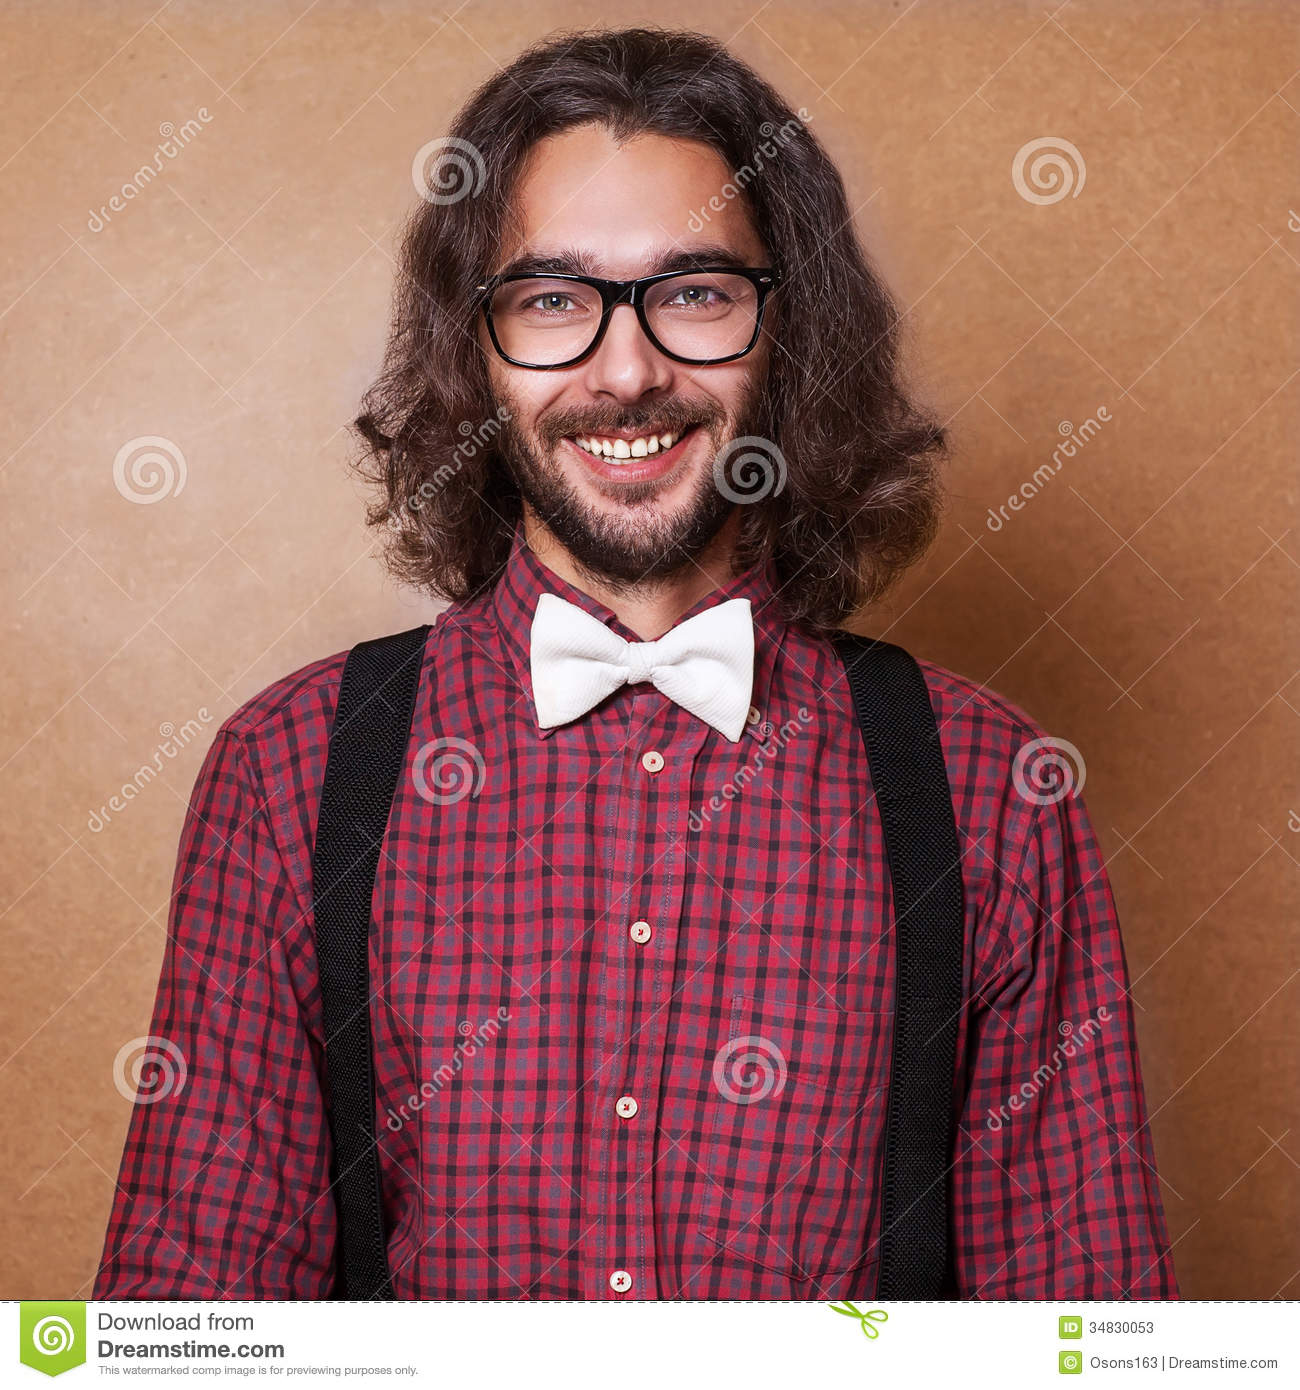 920f89d1b19 Hipster guy stock image. Image of hipster